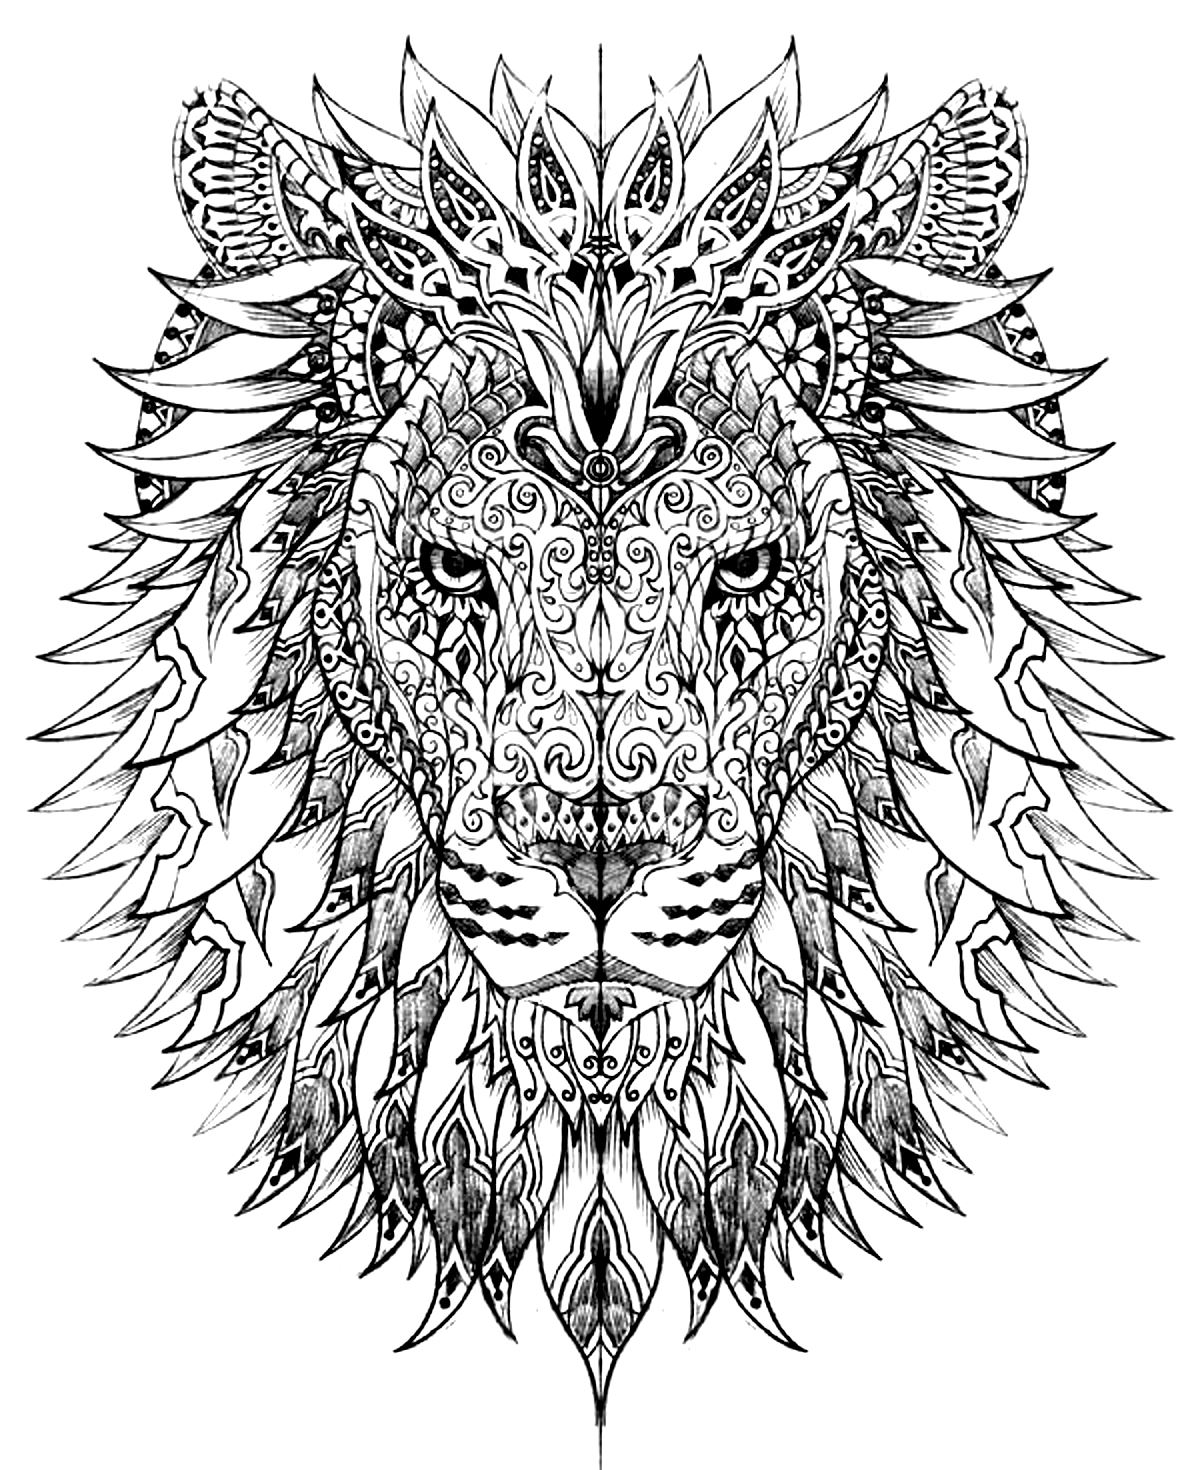 Tete Lion Lions Coloriages Difficiles Pour Adultes